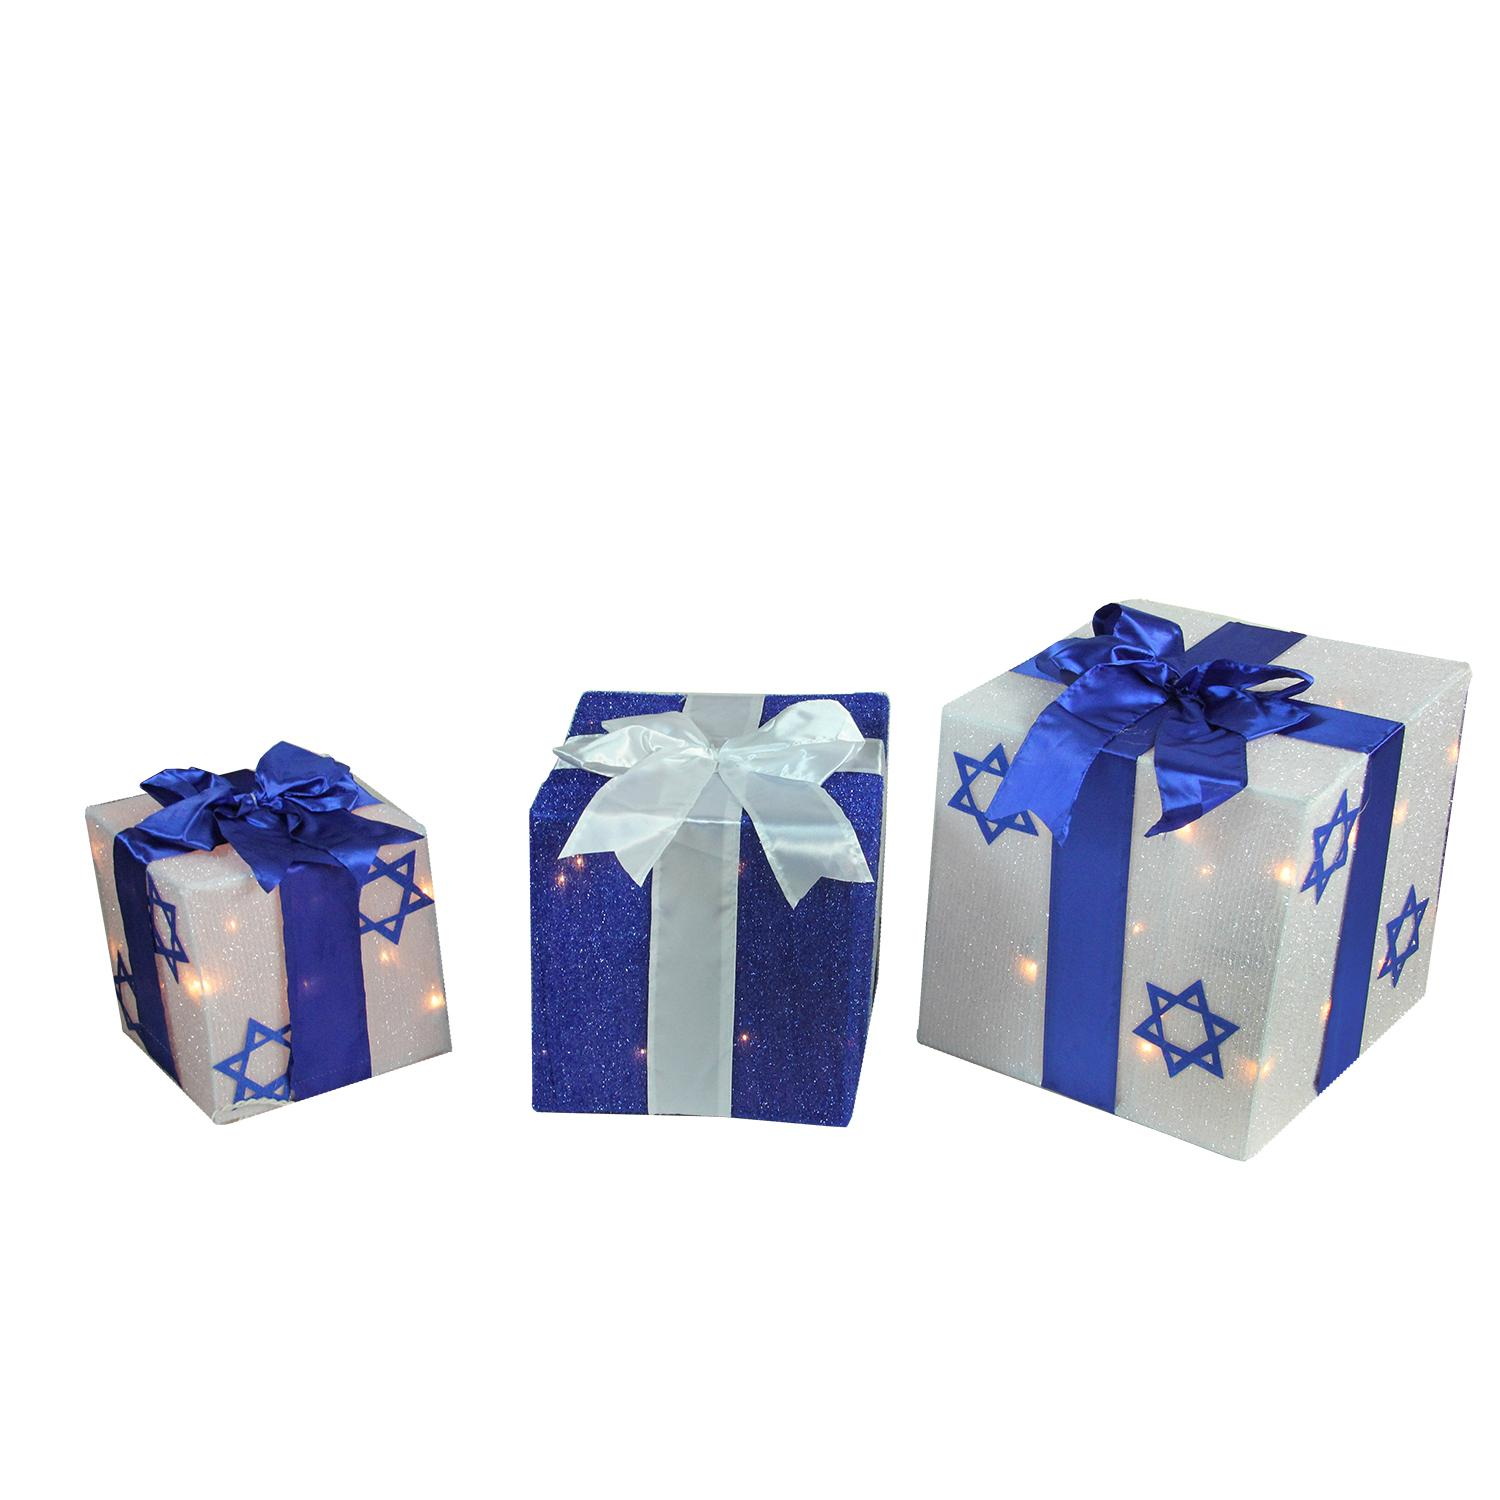 Lighted christmas gift boxes yard decor - 3 Piece Lighted White And Blue Hanukkah Gift Box Christmas Yard Art Decoration Set Walmart Com